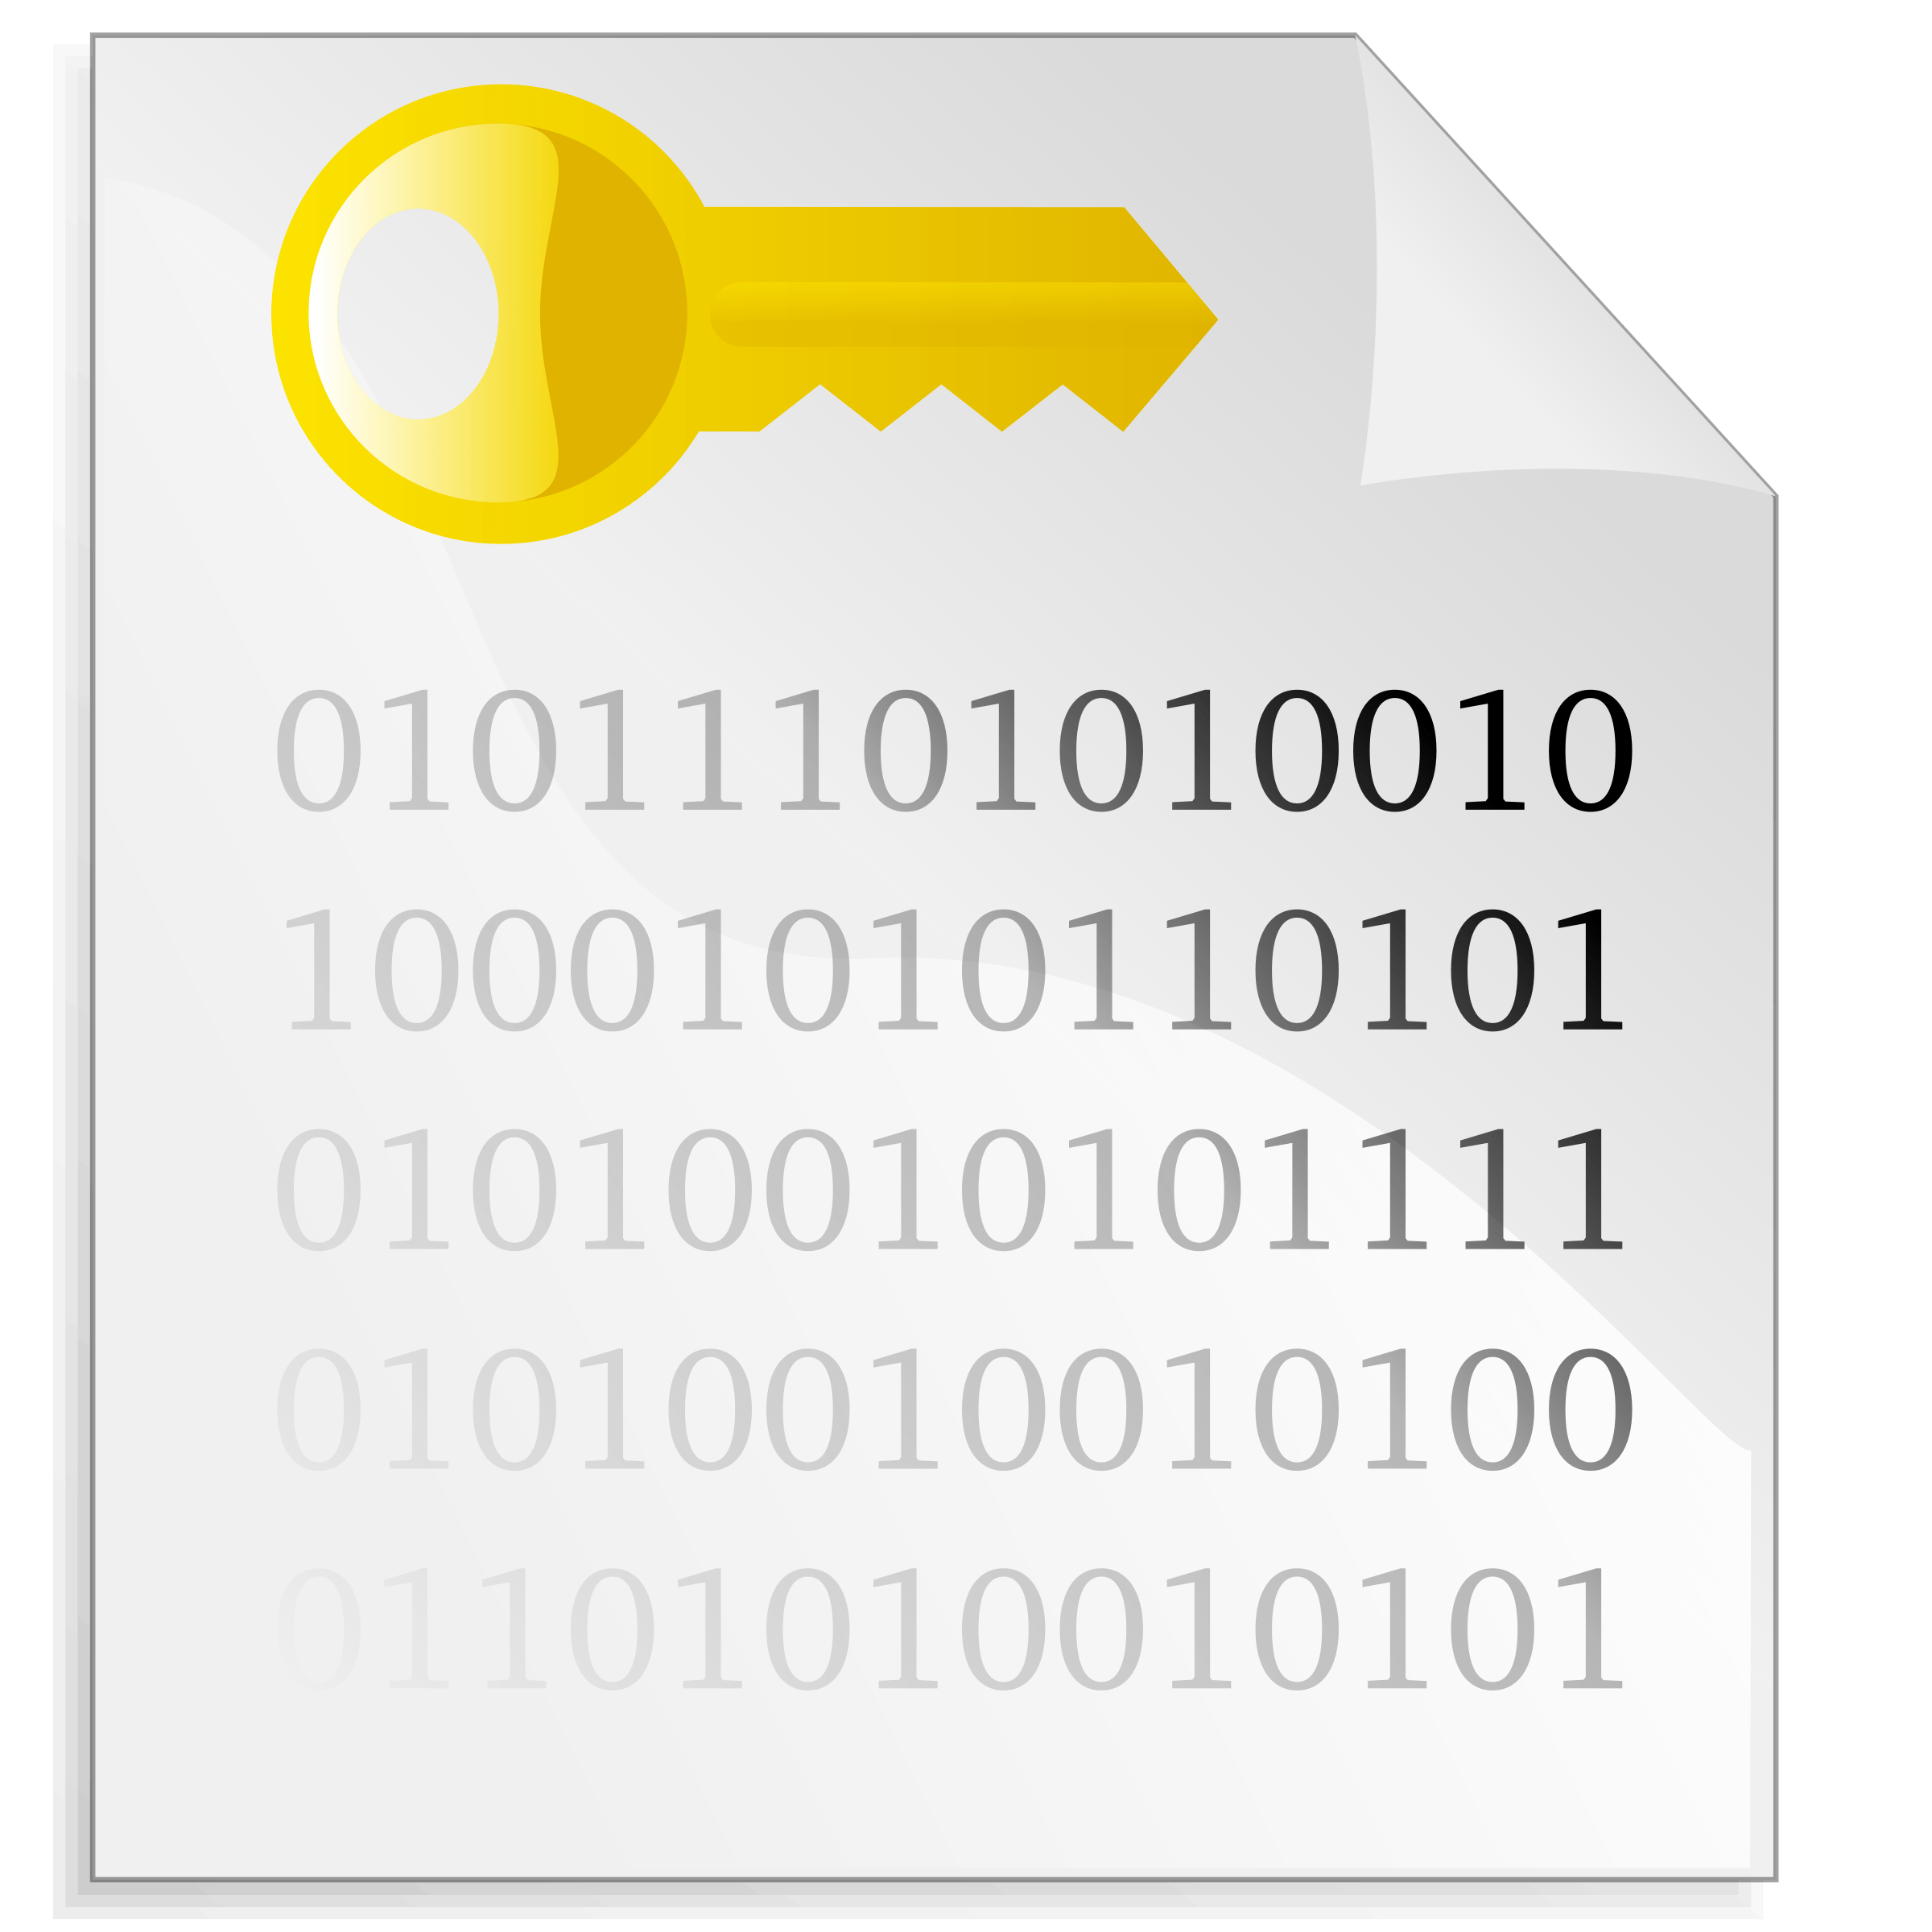 Truecrypt encryption software ceases production